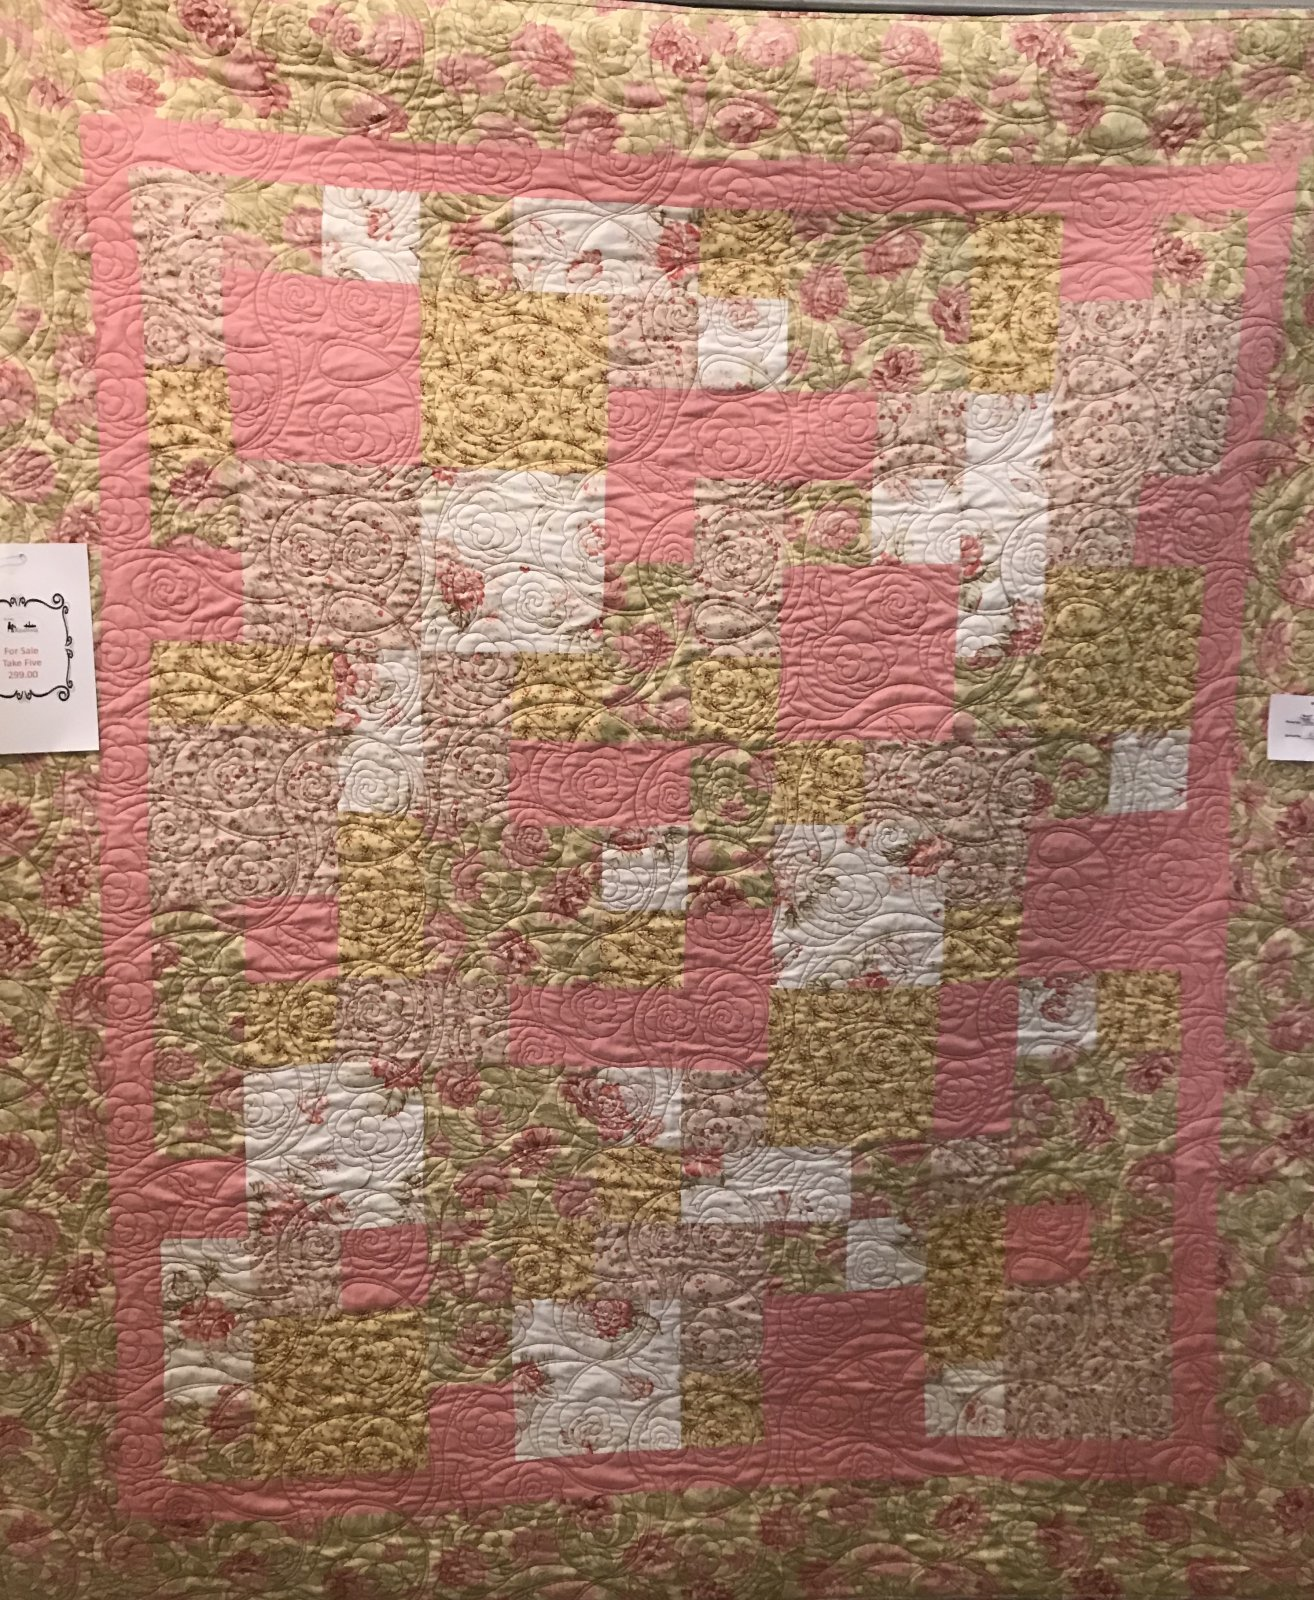 Take Five Quilt - Pieced by Kelee Guillory - quilting by Six Mile Quilting